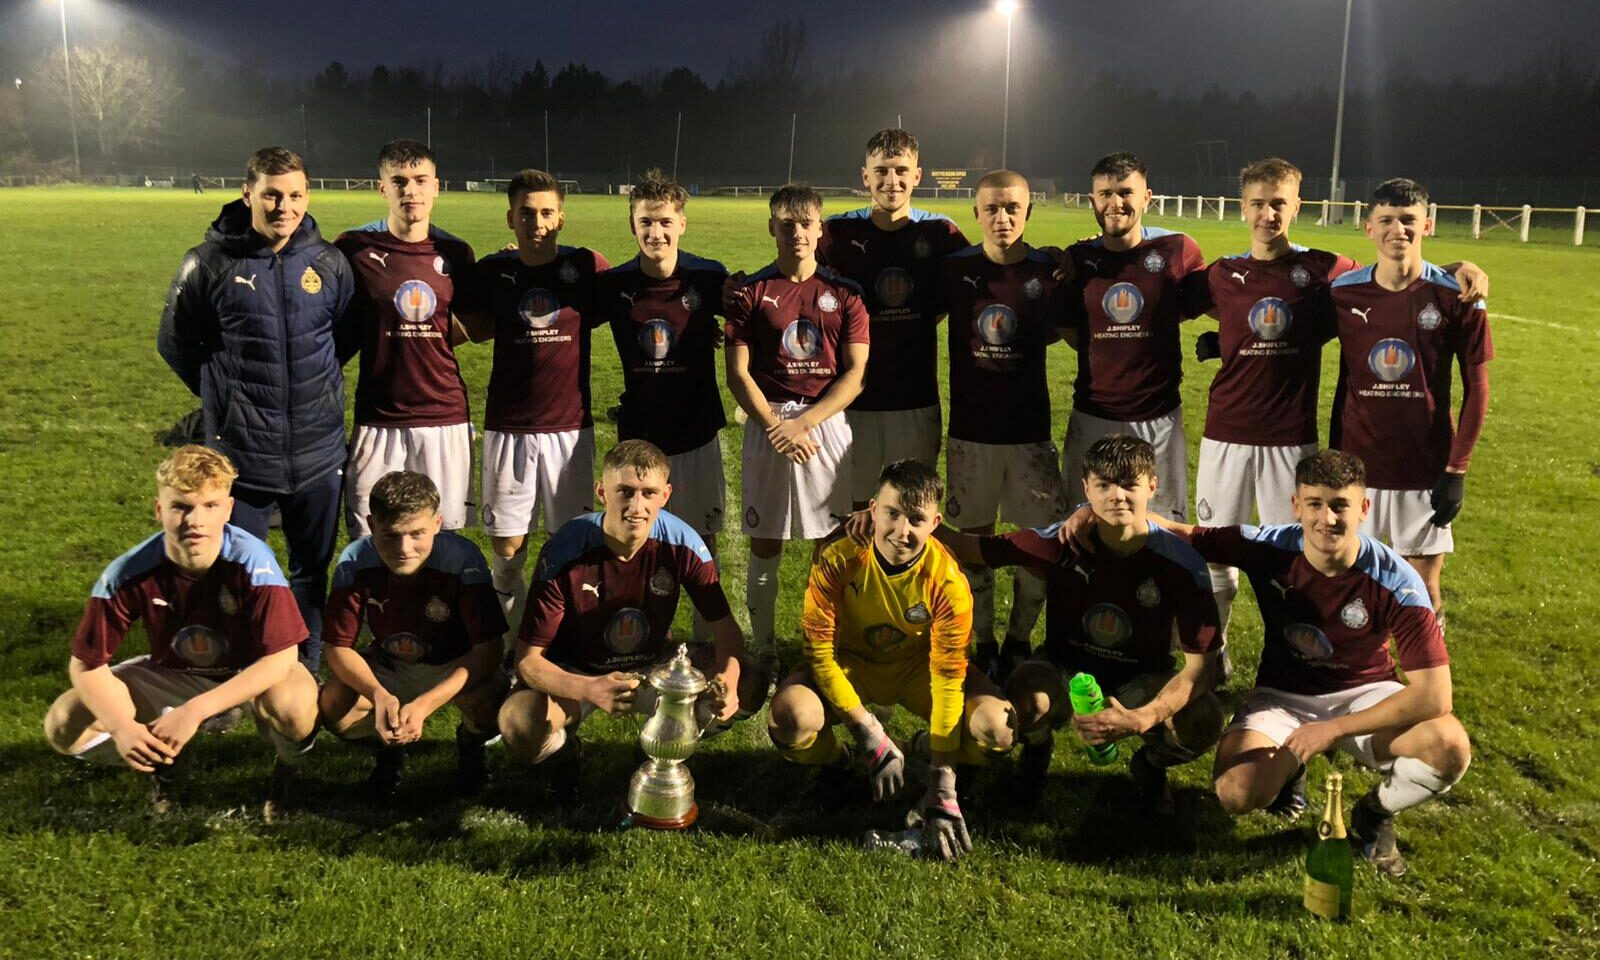 Mariners retain Sam Bartram Cup with entertaining win